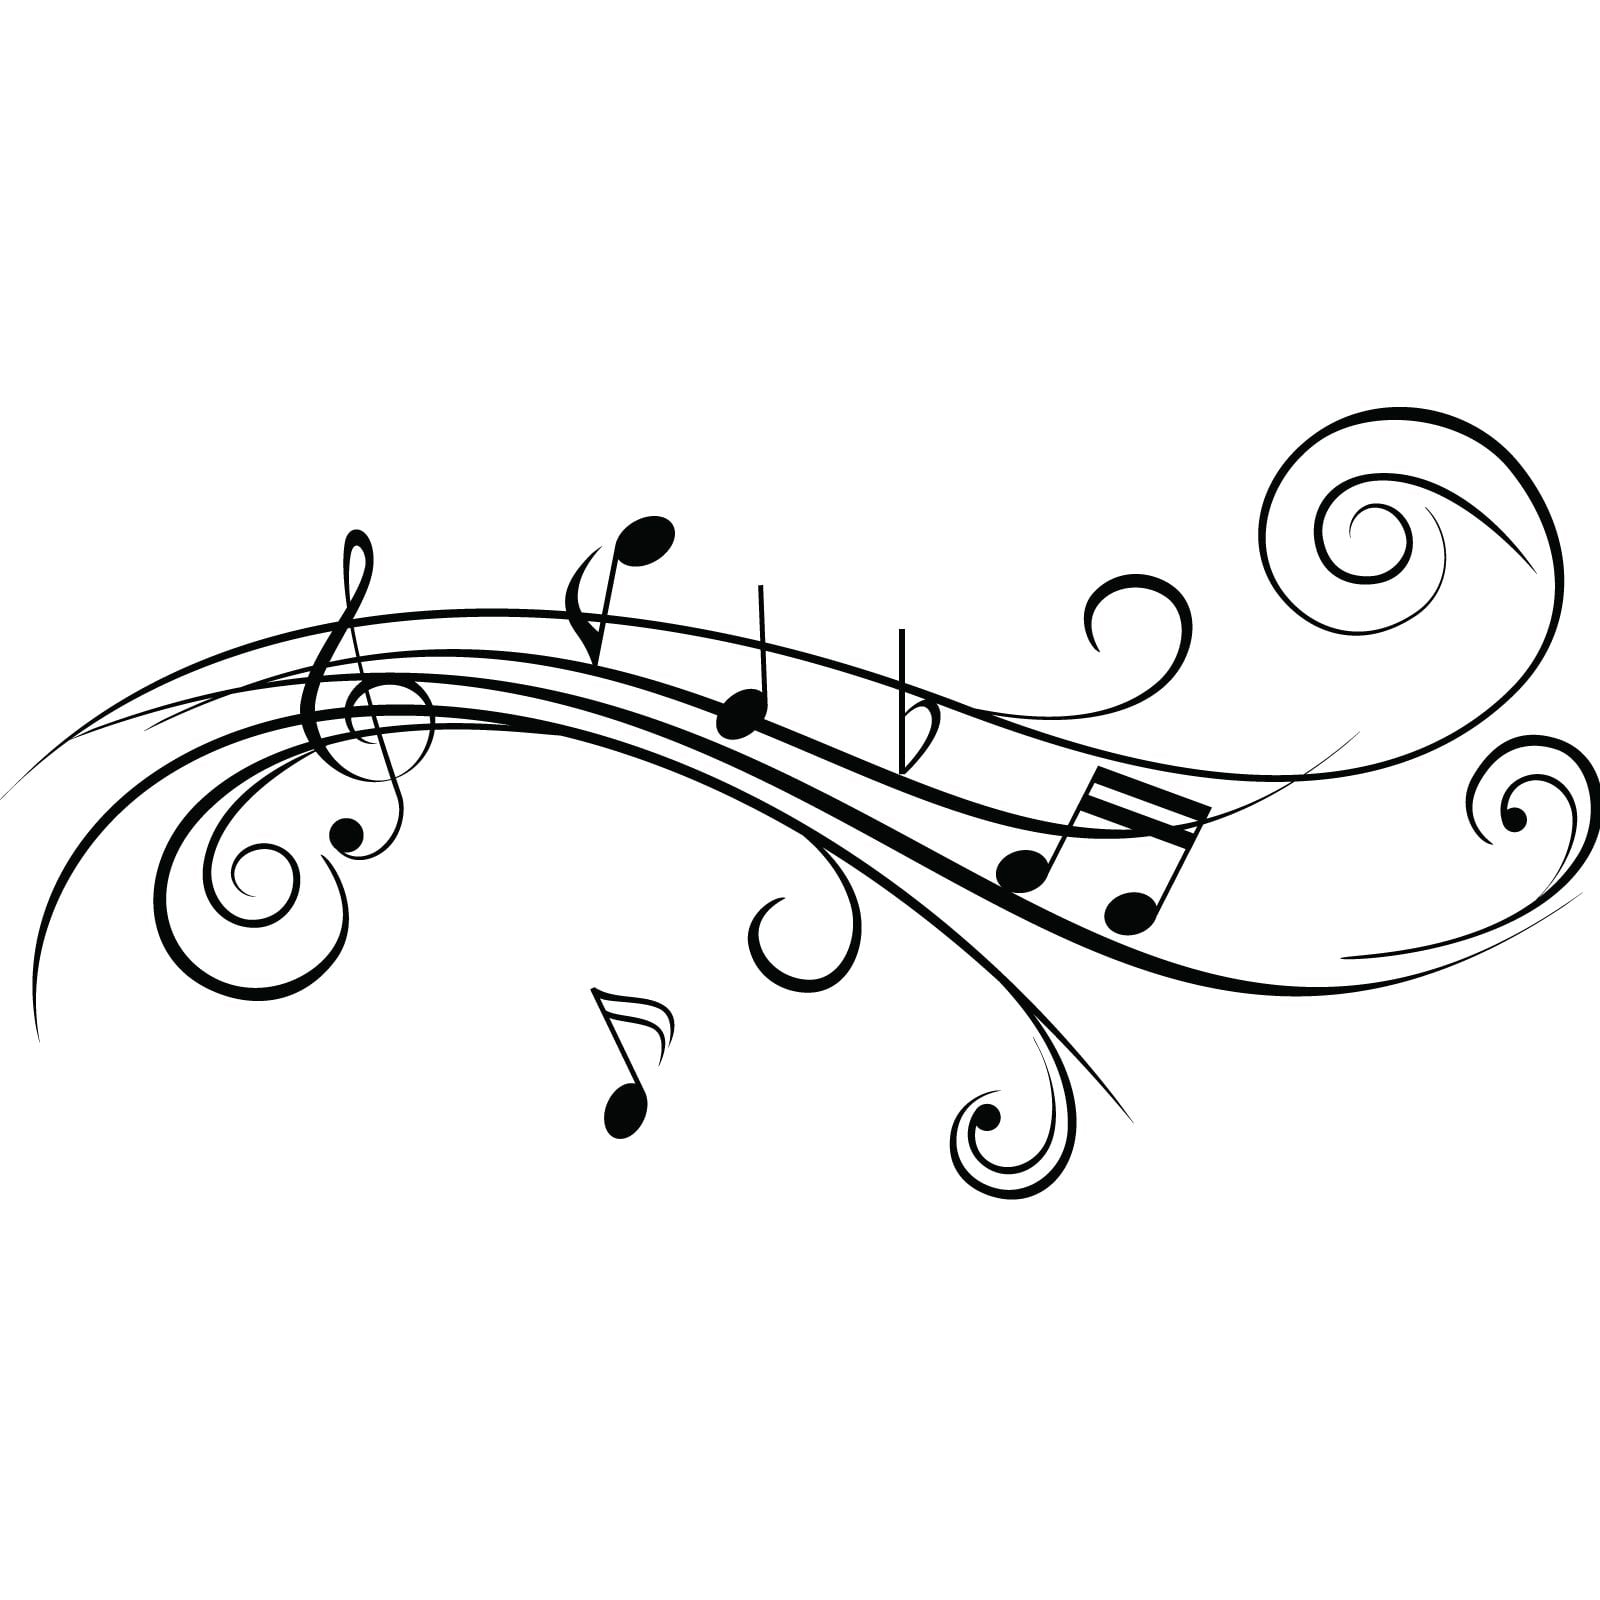 Cool Musical Notes V2 Wall Sticker